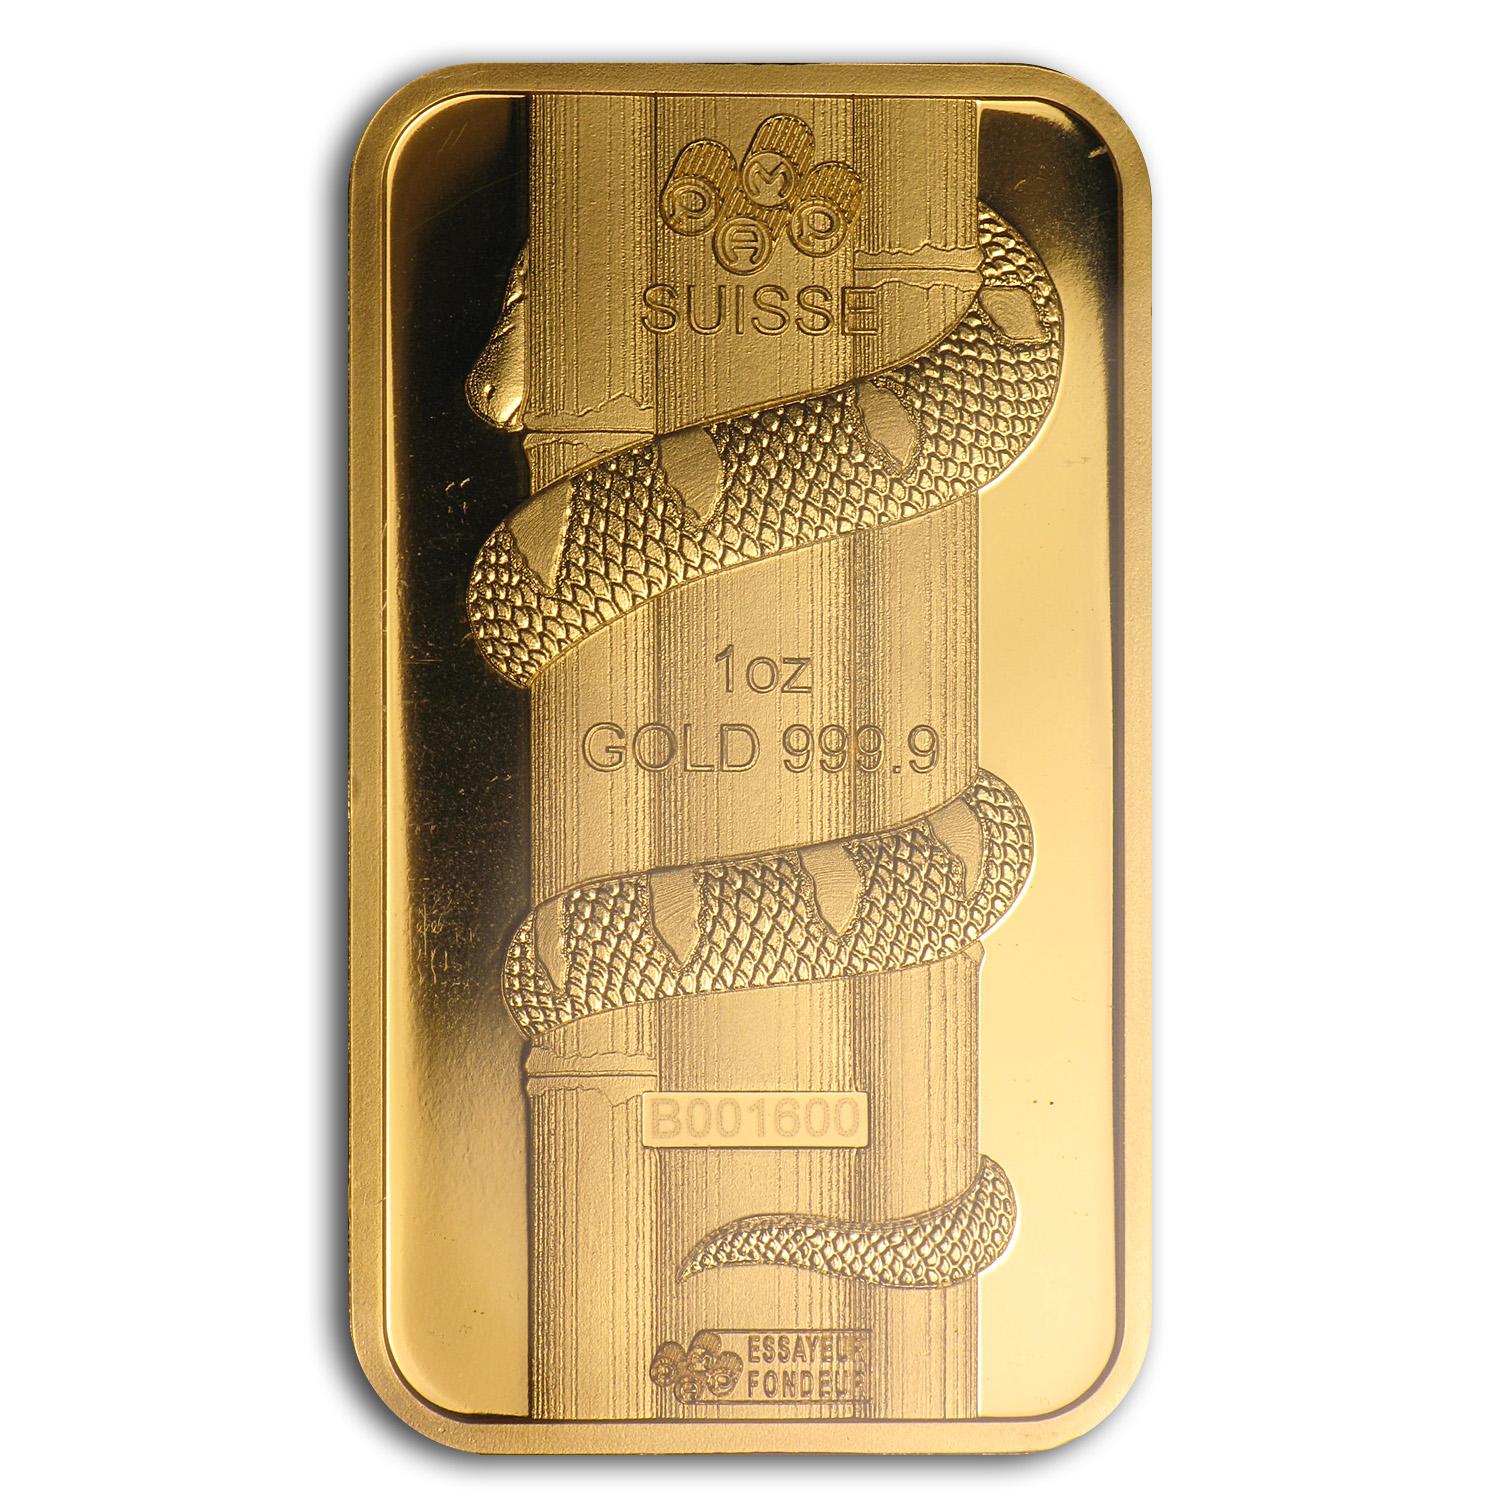 1 oz Gold Bar - Pamp Suisse Year of the Snake (In Assay)